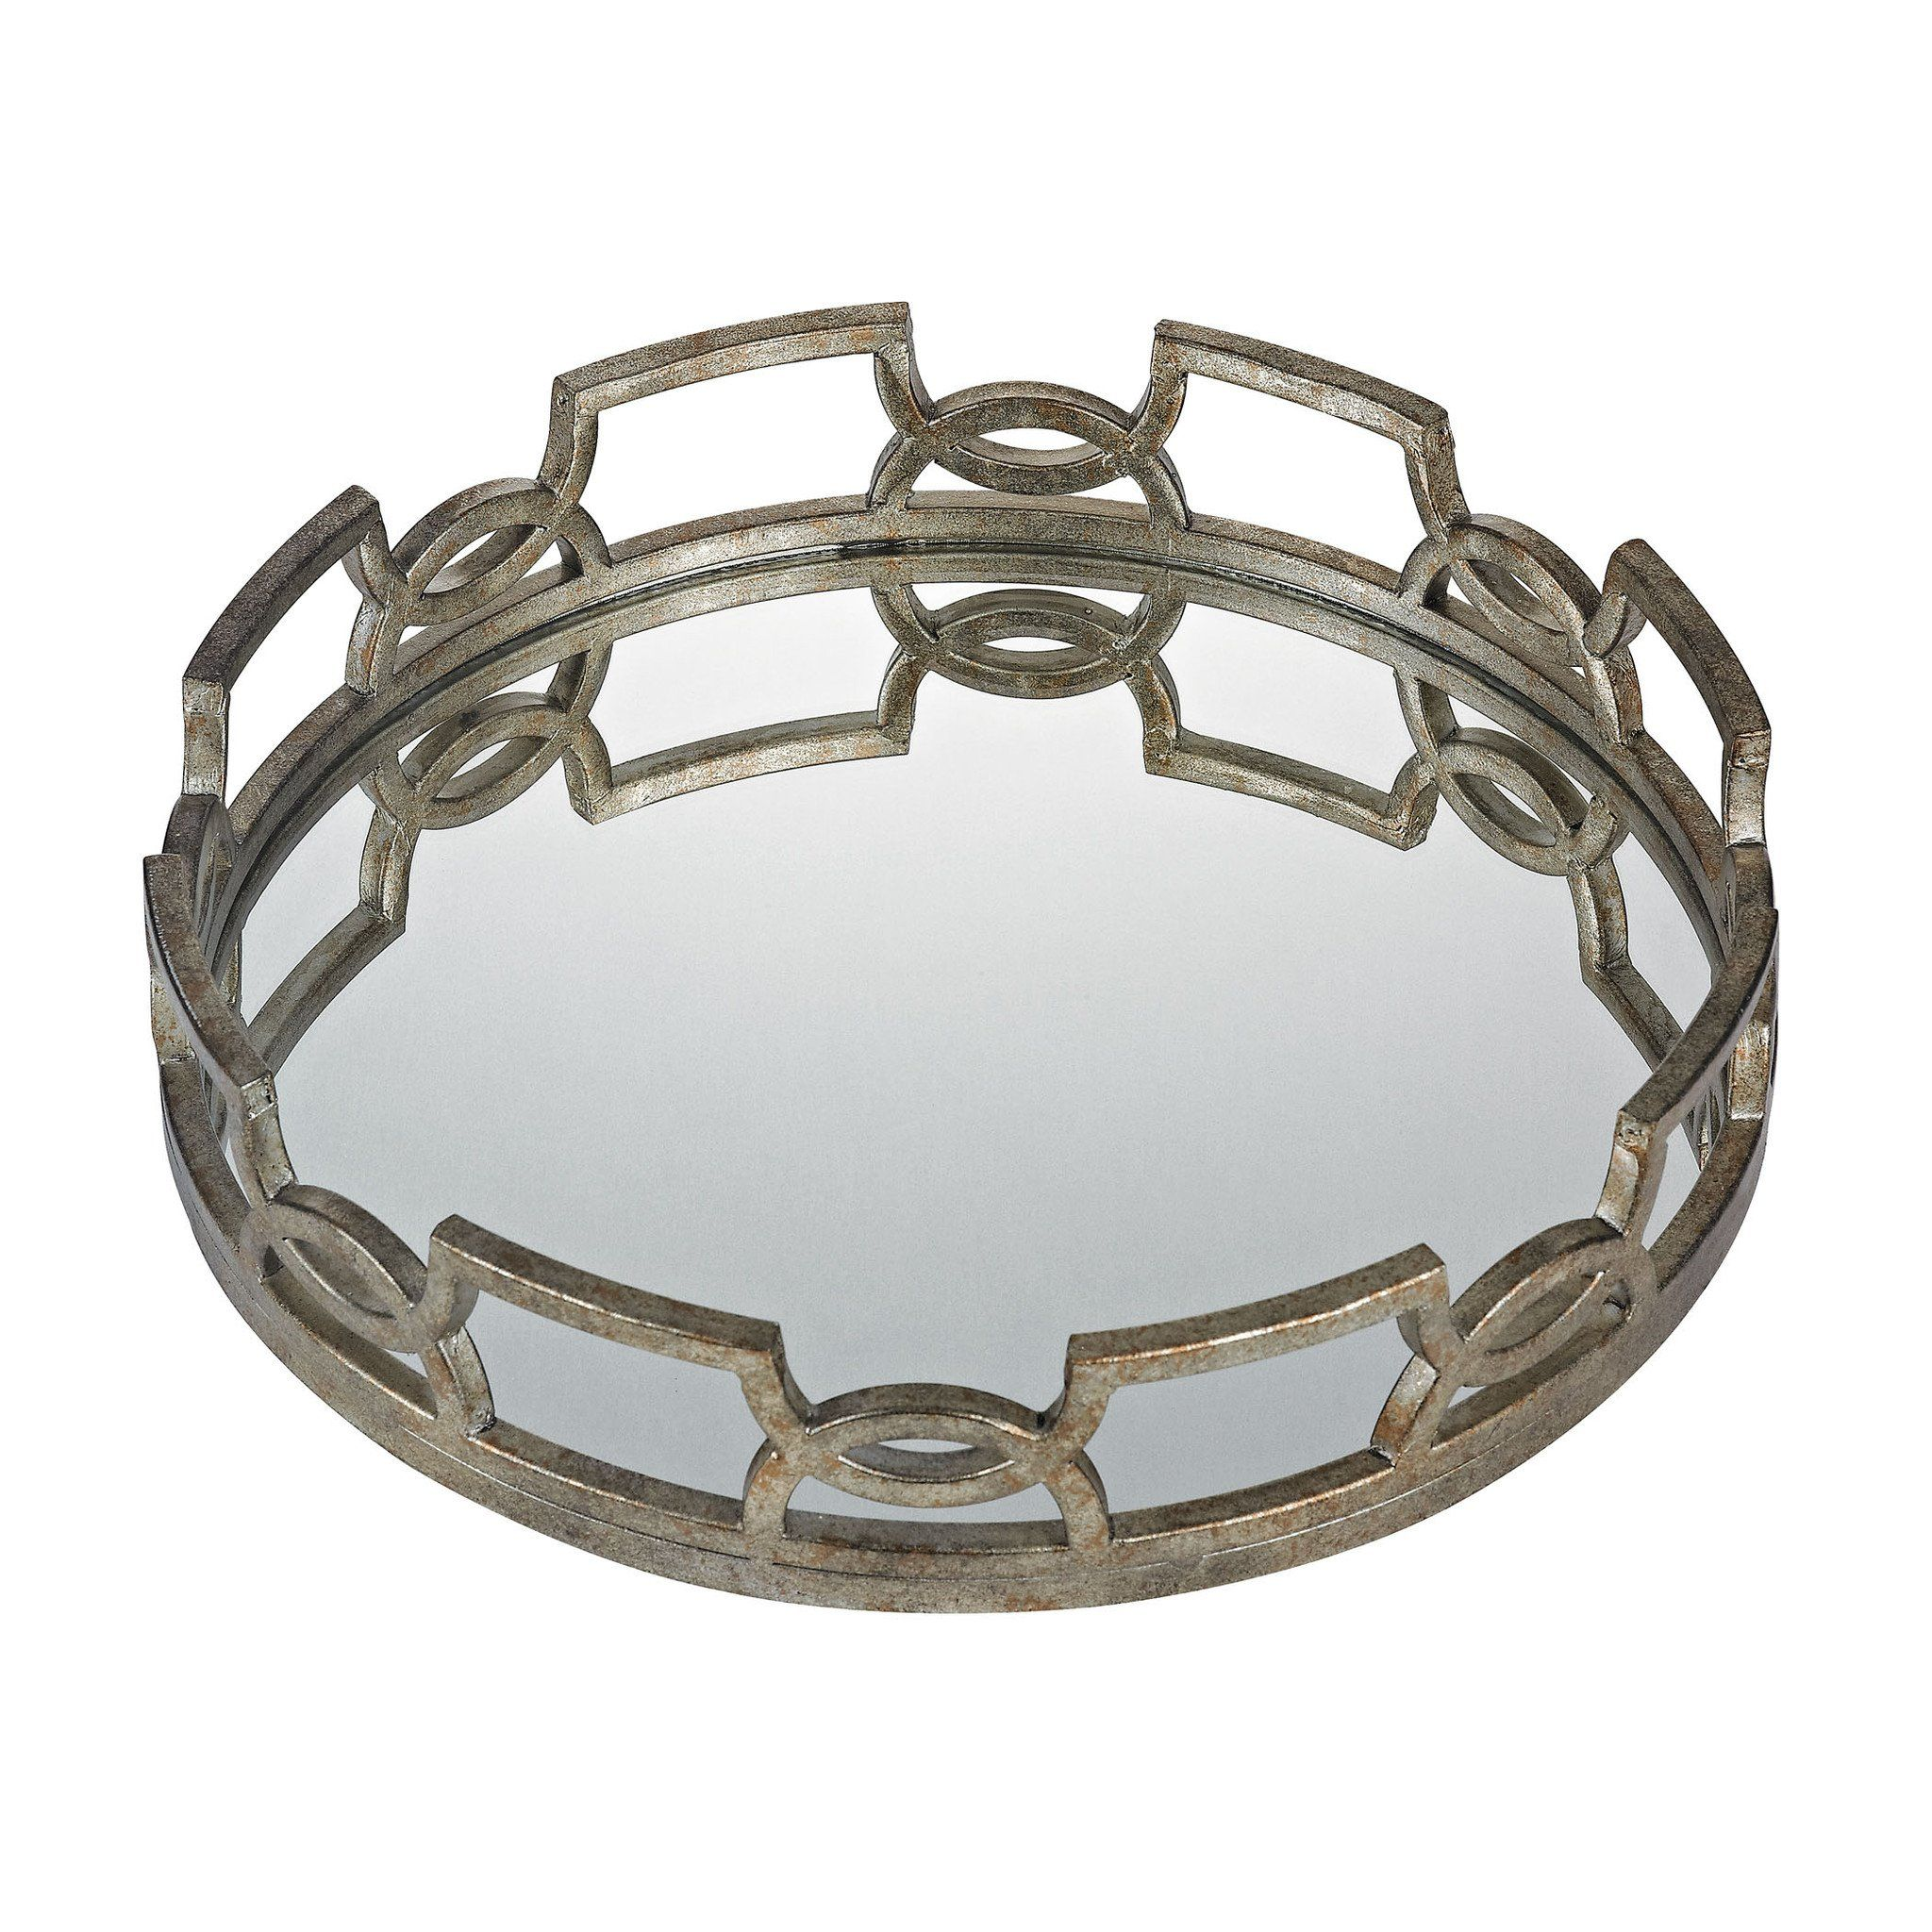 Decorative Mirror Tray Entrancing Iron Scroll Mirrored Tray  Mirror Tray Trays And Iron Decorating Design